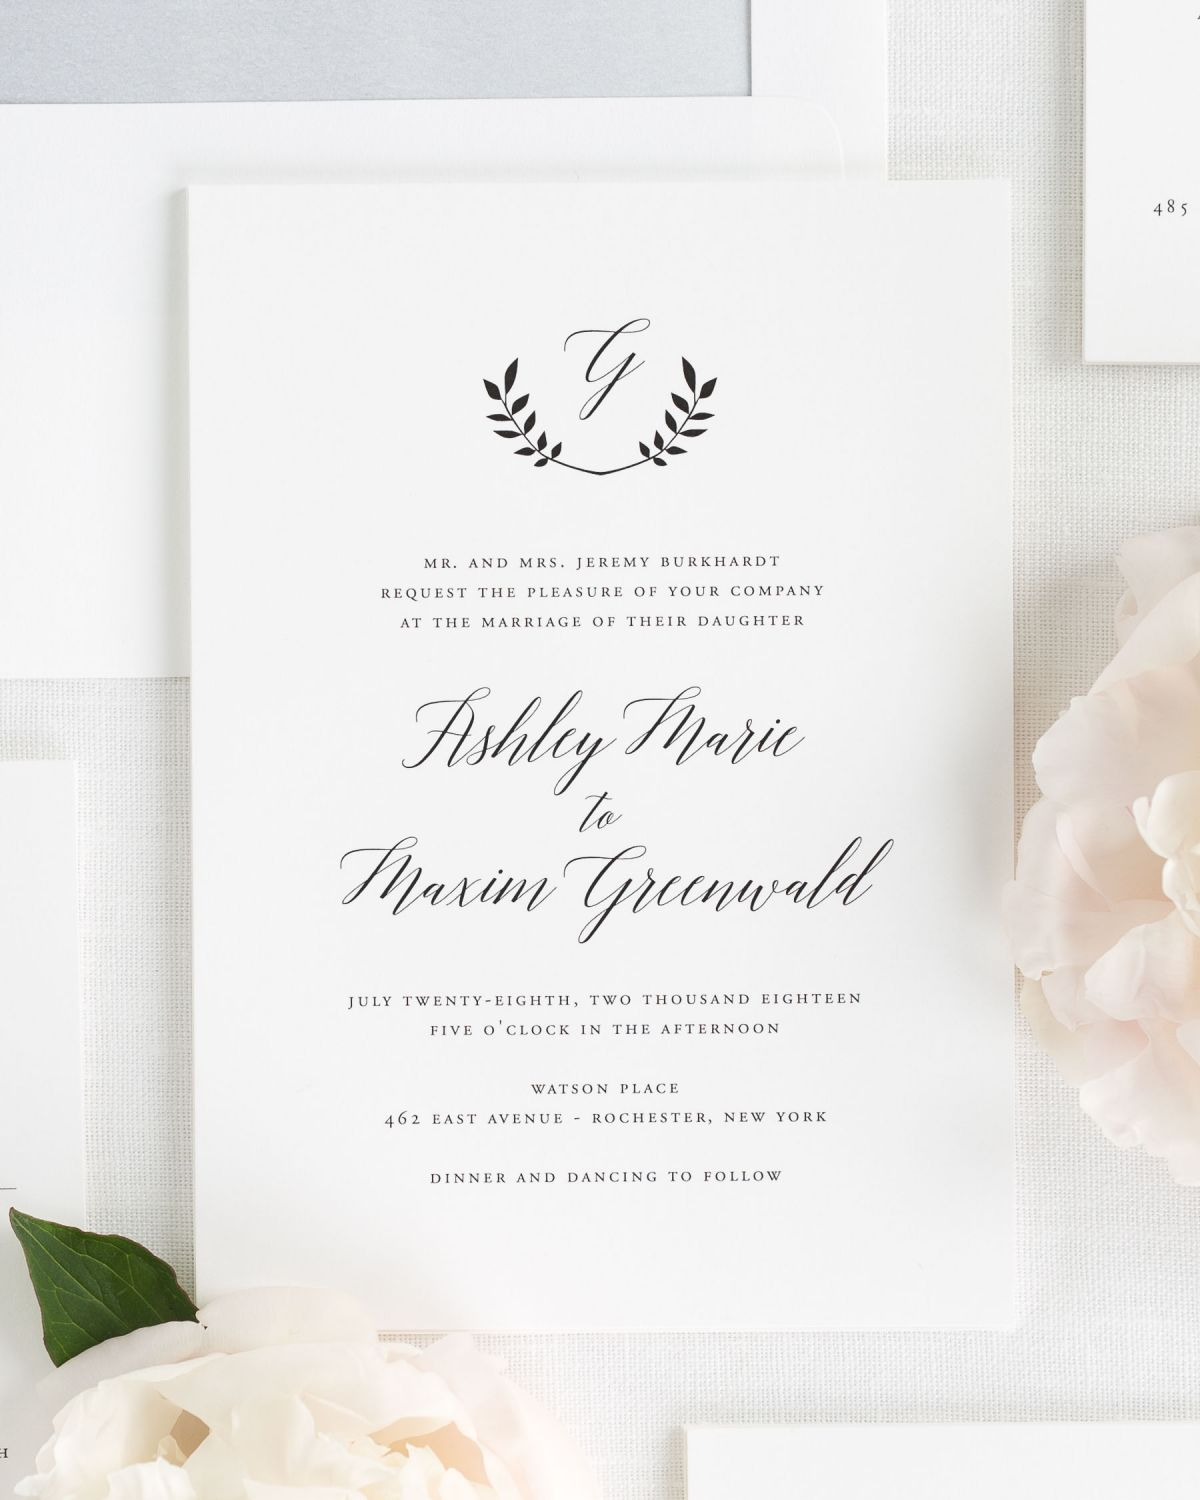 Wreath Monogram Wedding Invitations